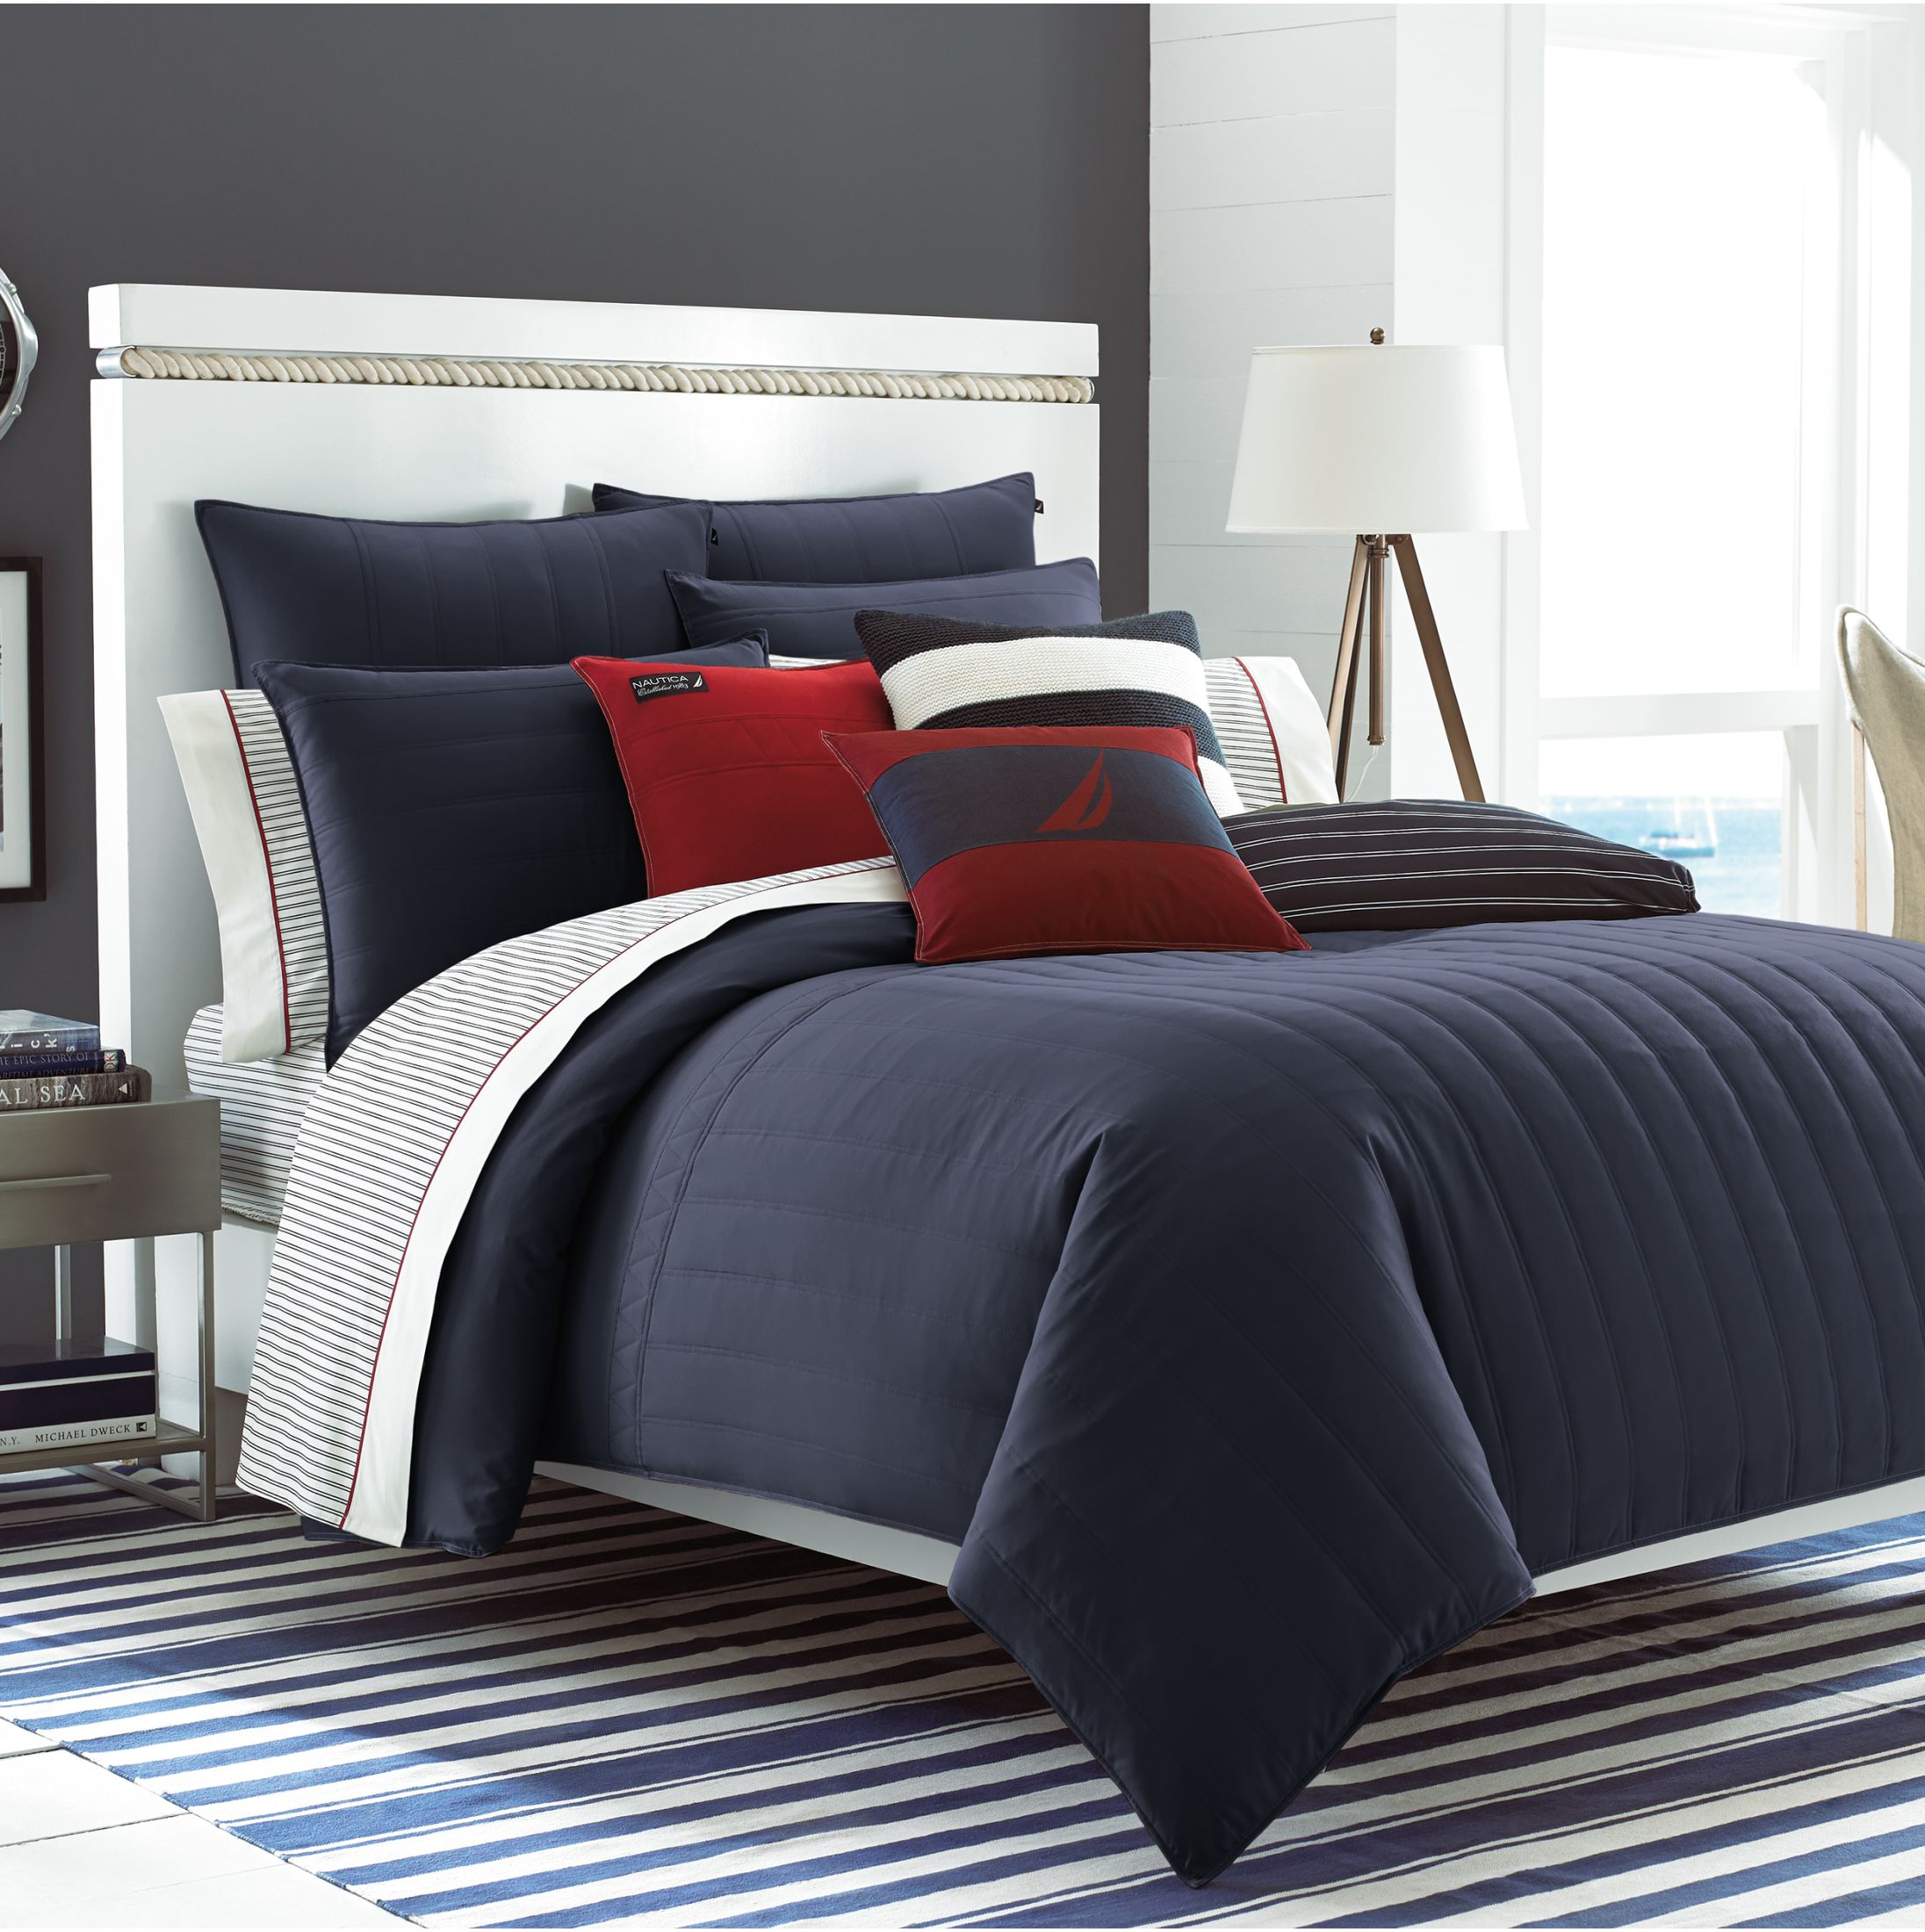 Bed sets for men - Bed Sets For Men